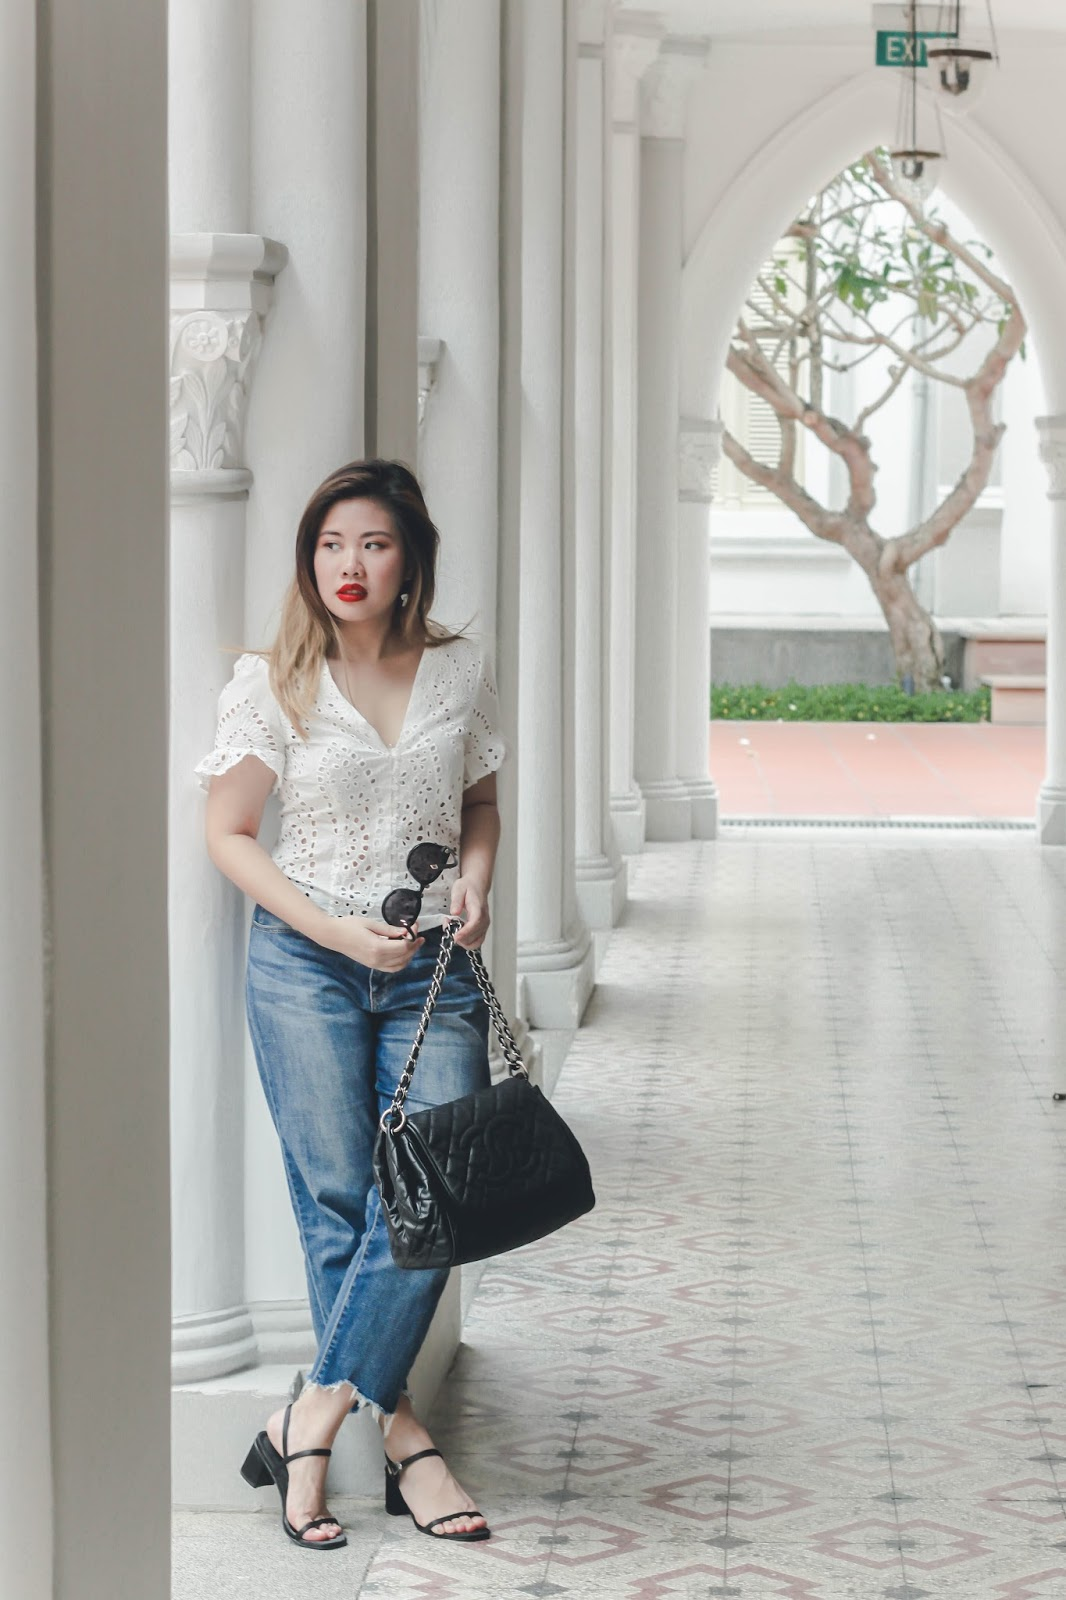 singapore blogger stylist photographer look book fashion street style white red lipstick chanel how to style what to wear